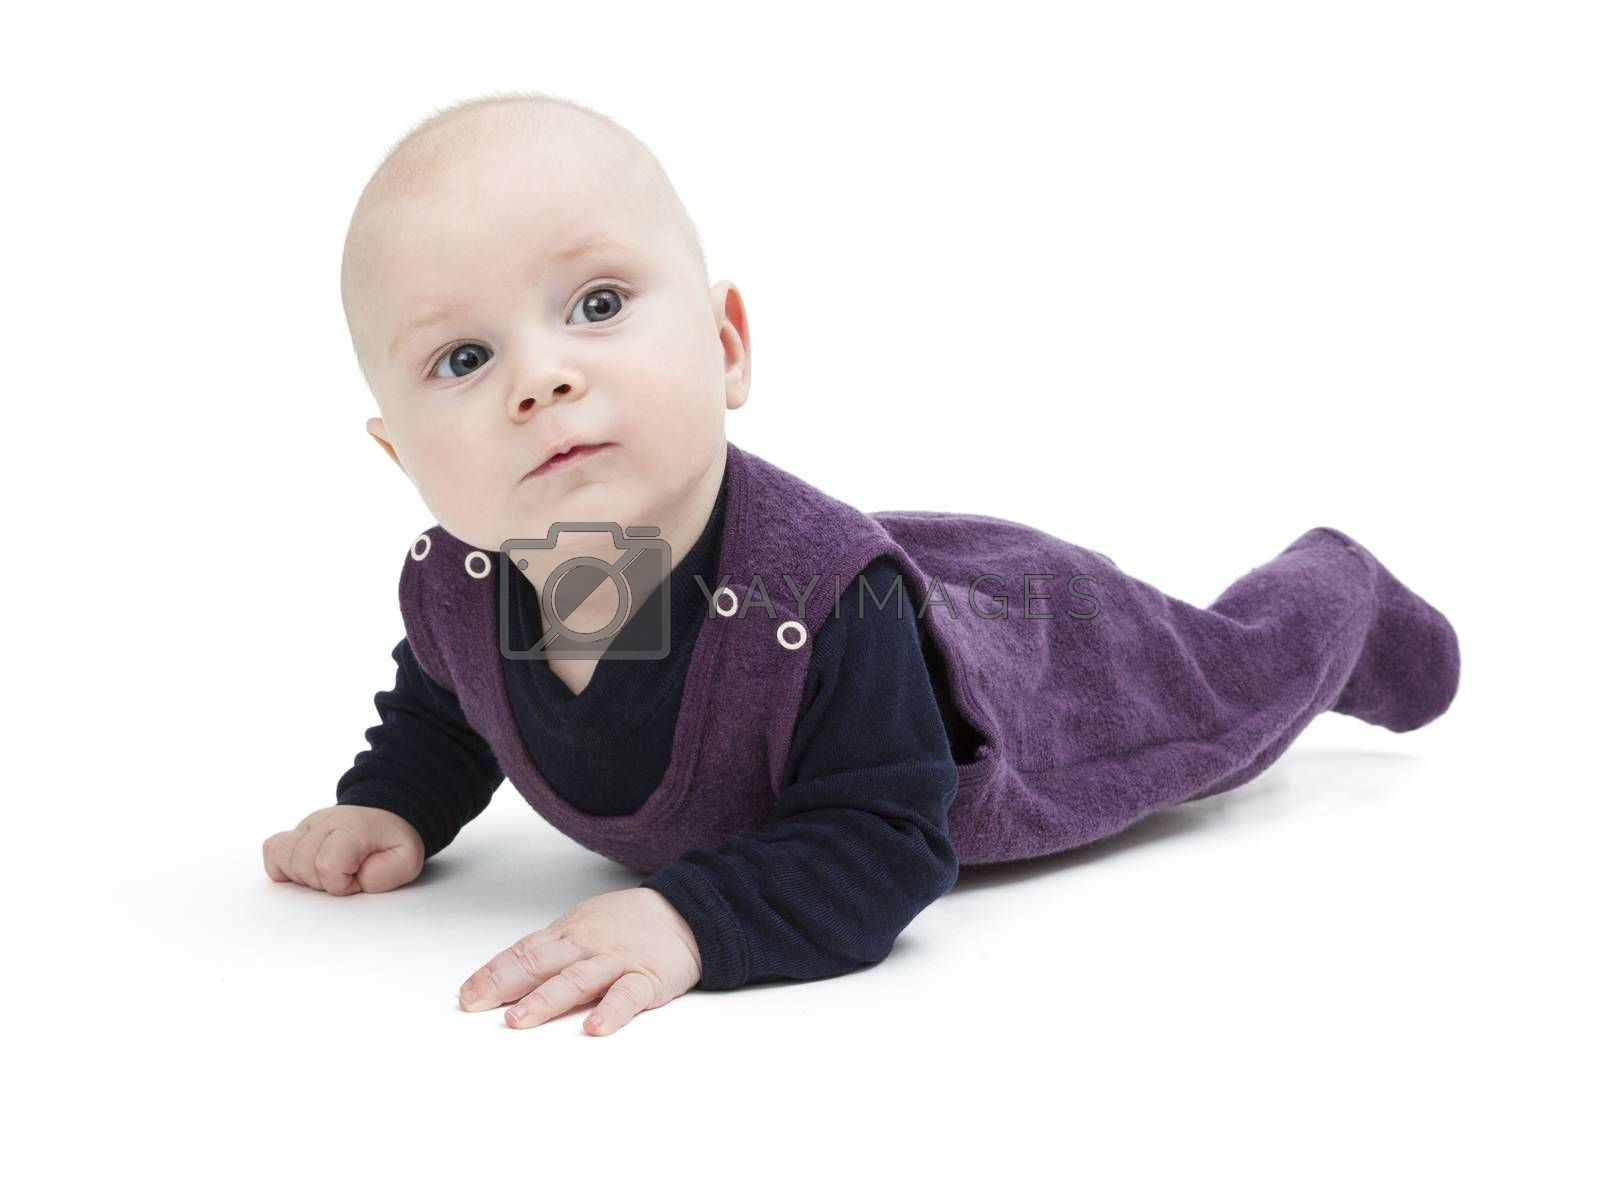 Royalty free image of toddler isolated on floor by gewoldi